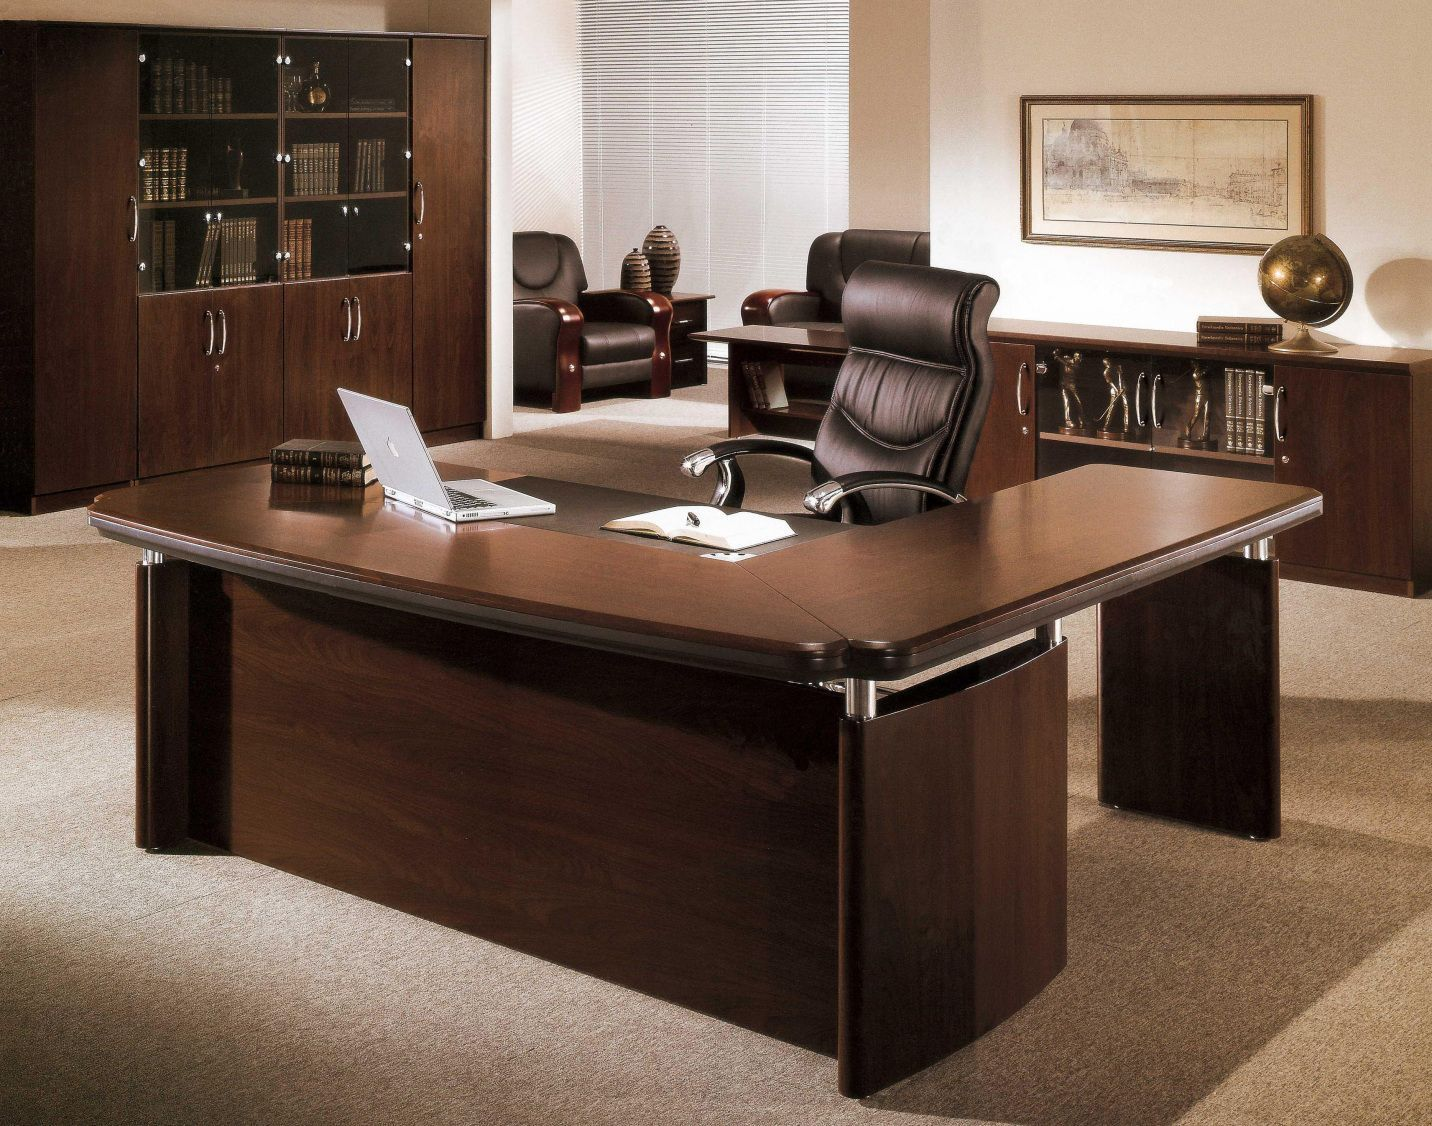 executive office decorating ideas. Small Executive Office Desk - Guest Decorating Ideas Check More At Http://